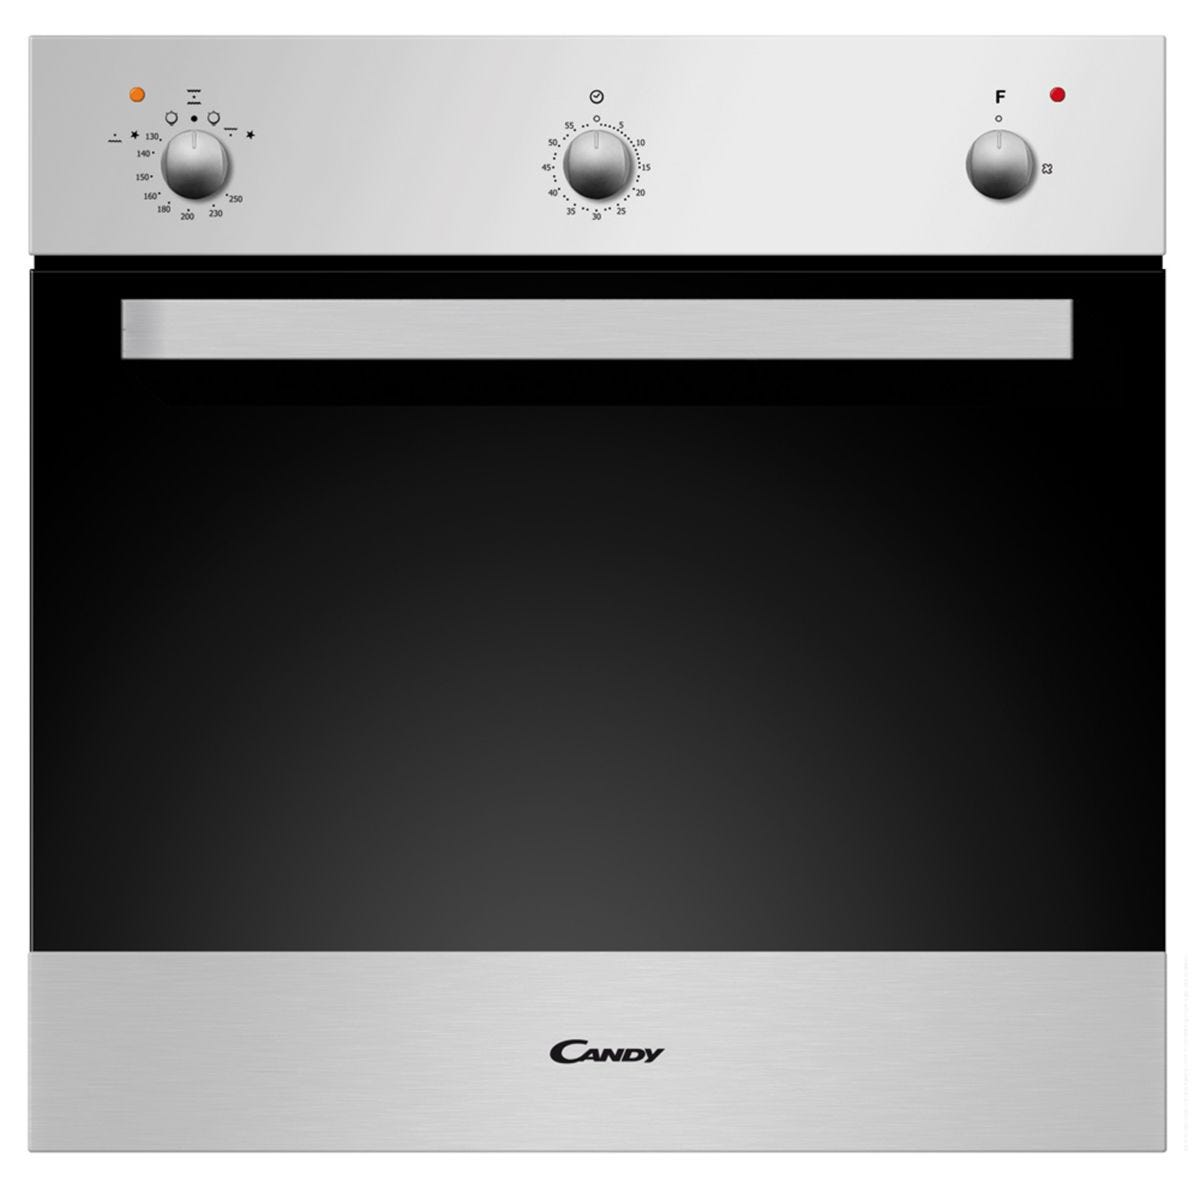 Candy OVG505/3X 54L Built-in Gas Single Oven - Silver